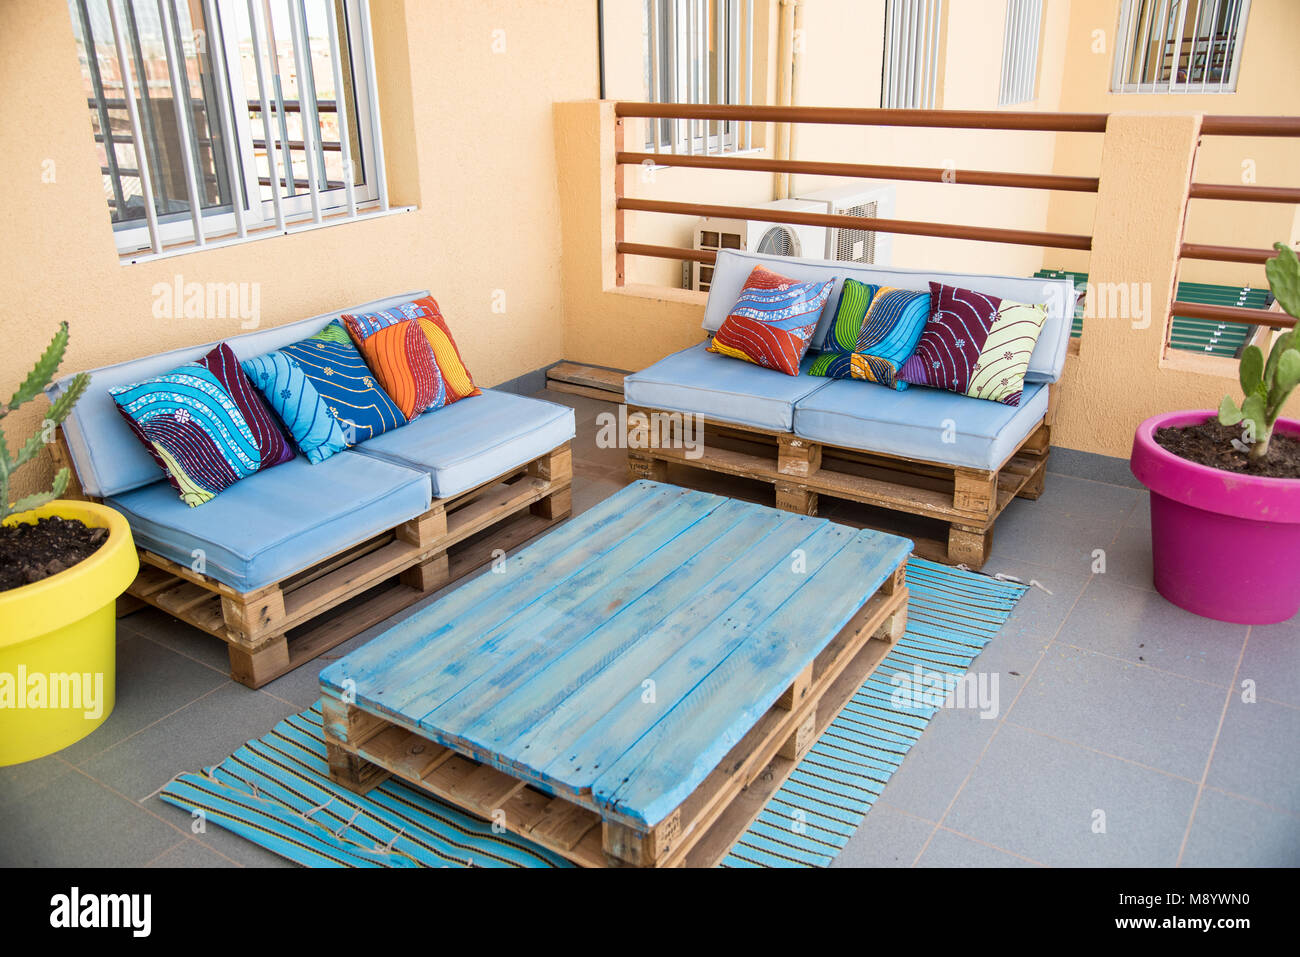 Cool Patio Furniture Made From Wooden Pallets. Painted Blue With Bold,  Colorful African Fabric Throw Pillows. Bright And Happy Space.